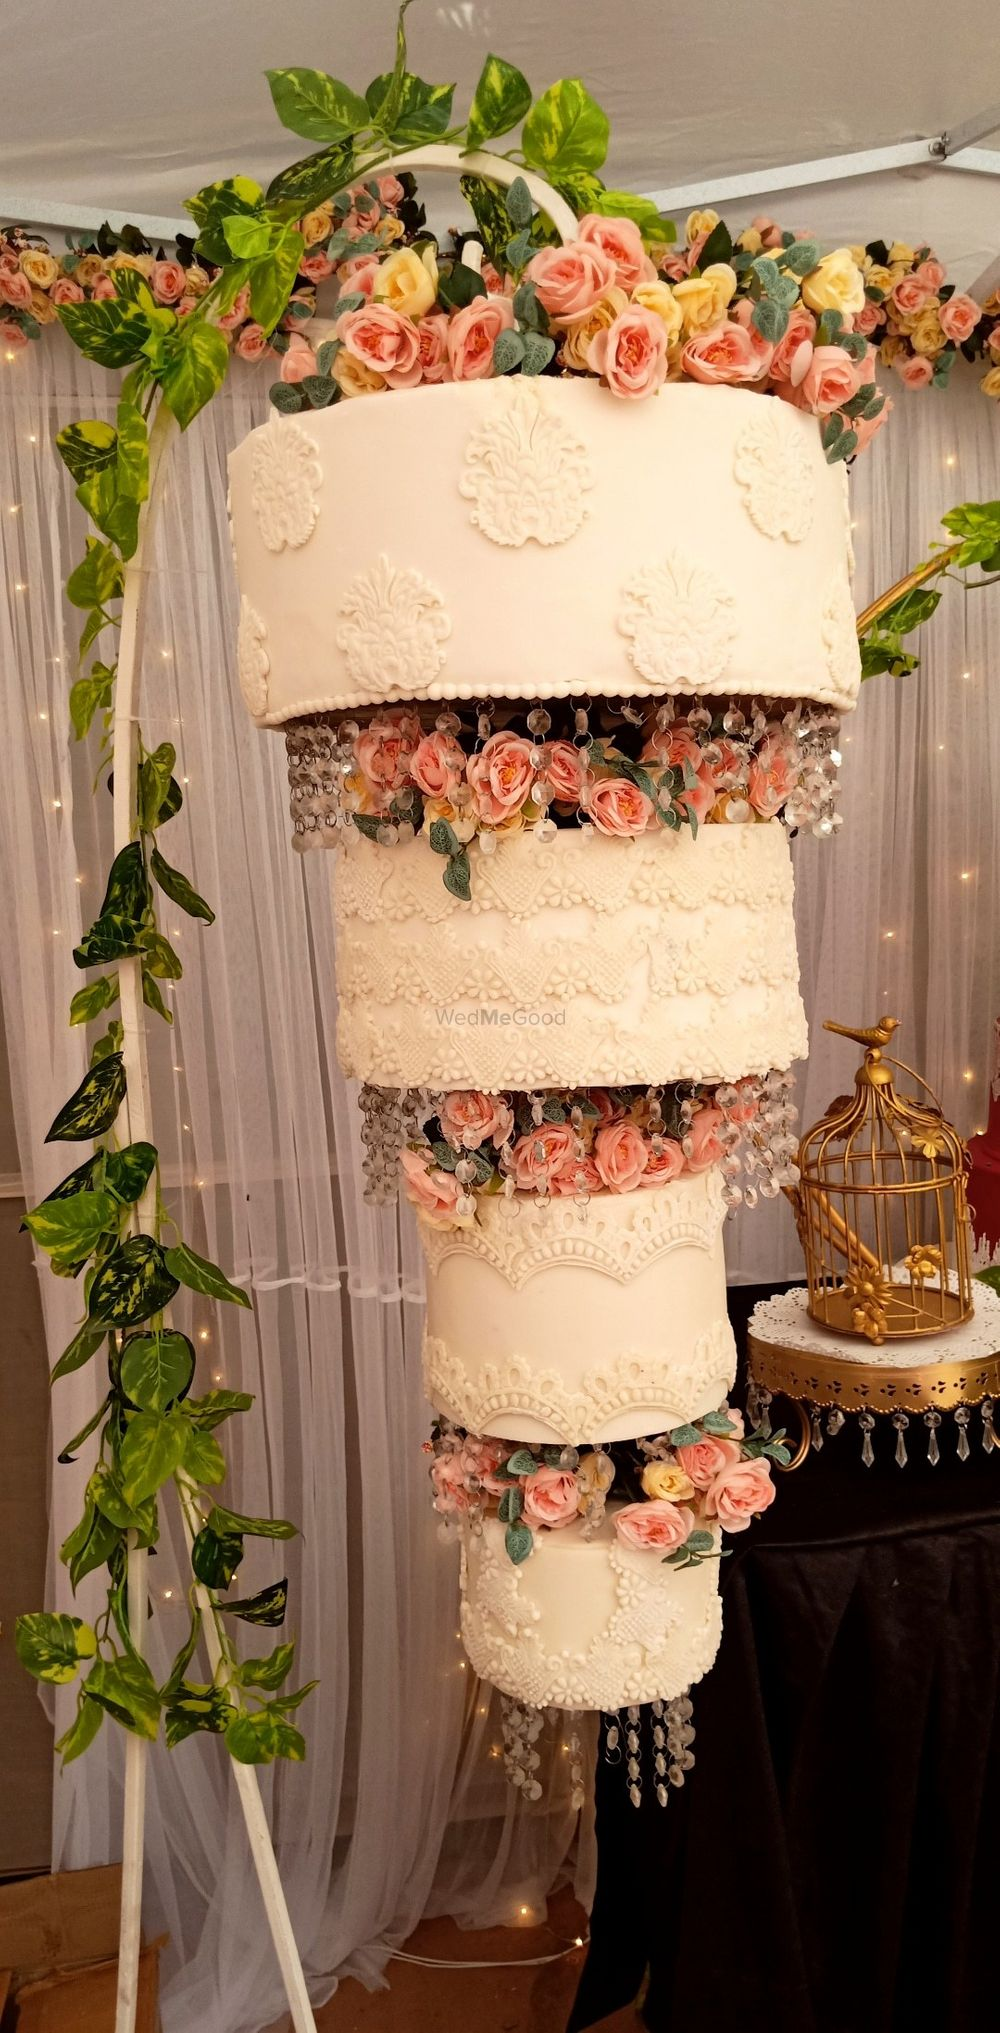 Photo From Chandelier Cakes - By Caked India